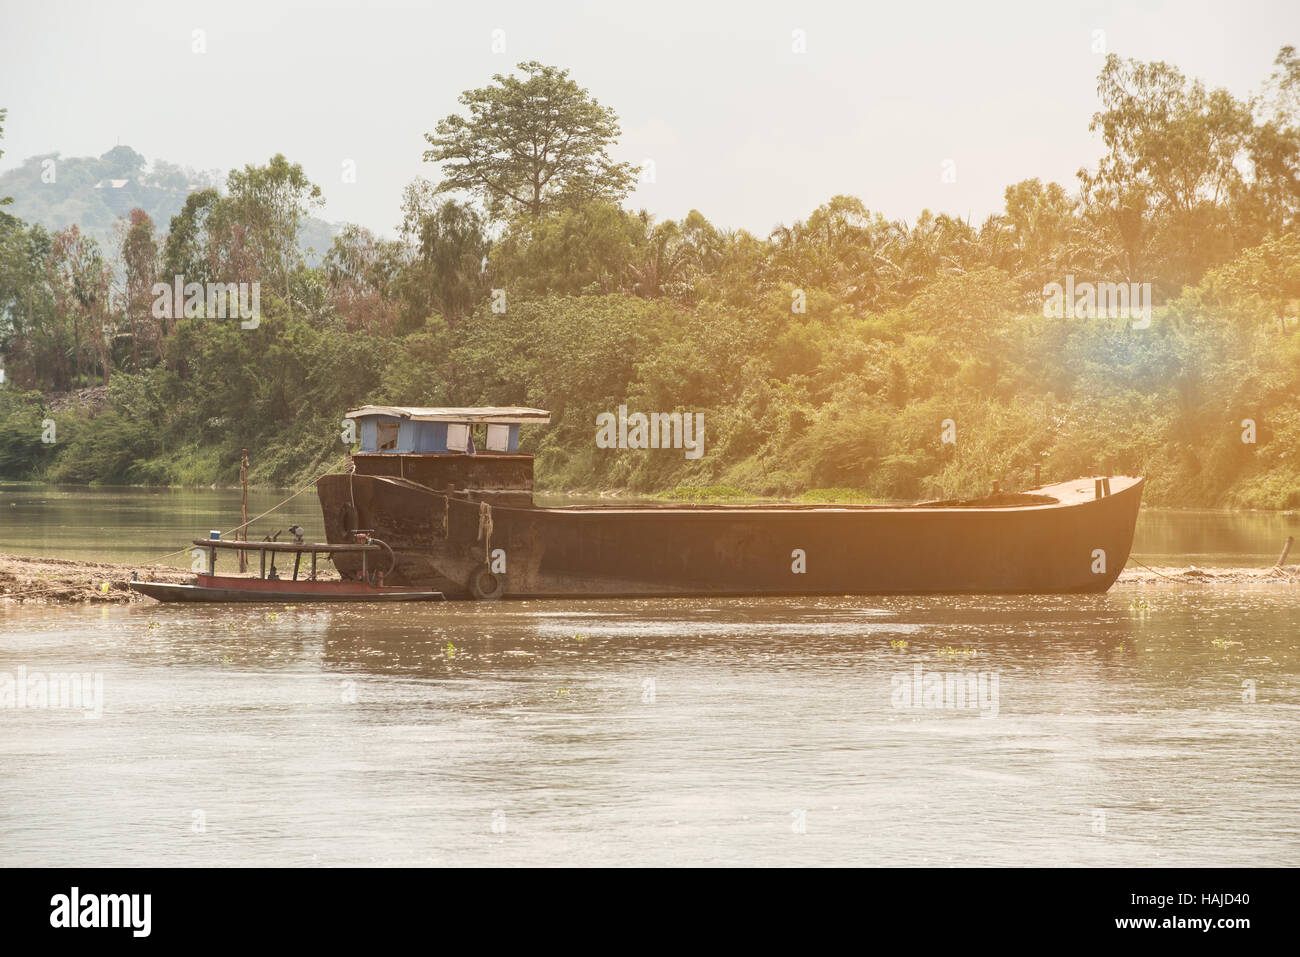 Sand boat with small boat park on river bank in construction site.sands explotation make change flow and environment - Stock Image